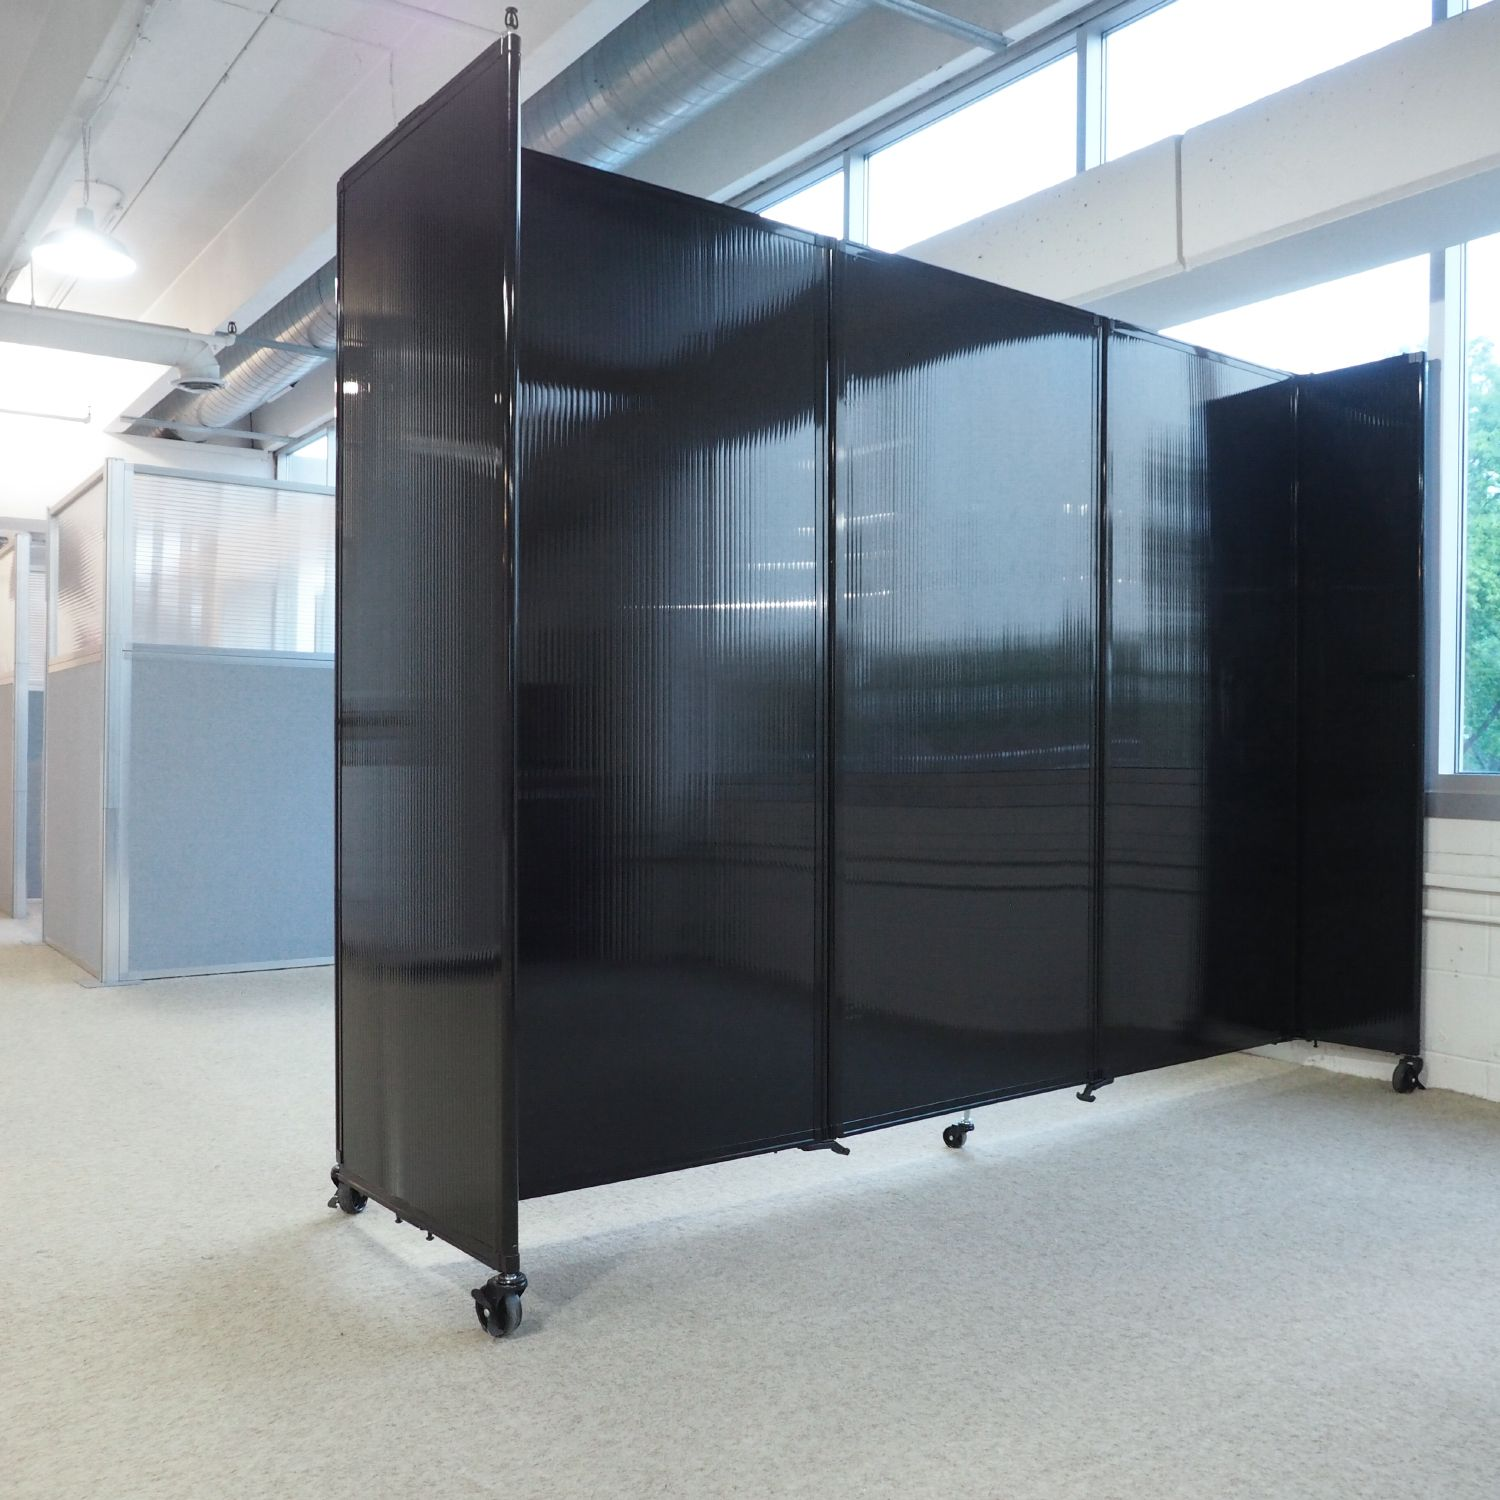 Delicieux Separate Space In The Office With A Modern Looku2014Our Cool, Dark  Polycarbonate Dividers Maintain A Fresh Look.